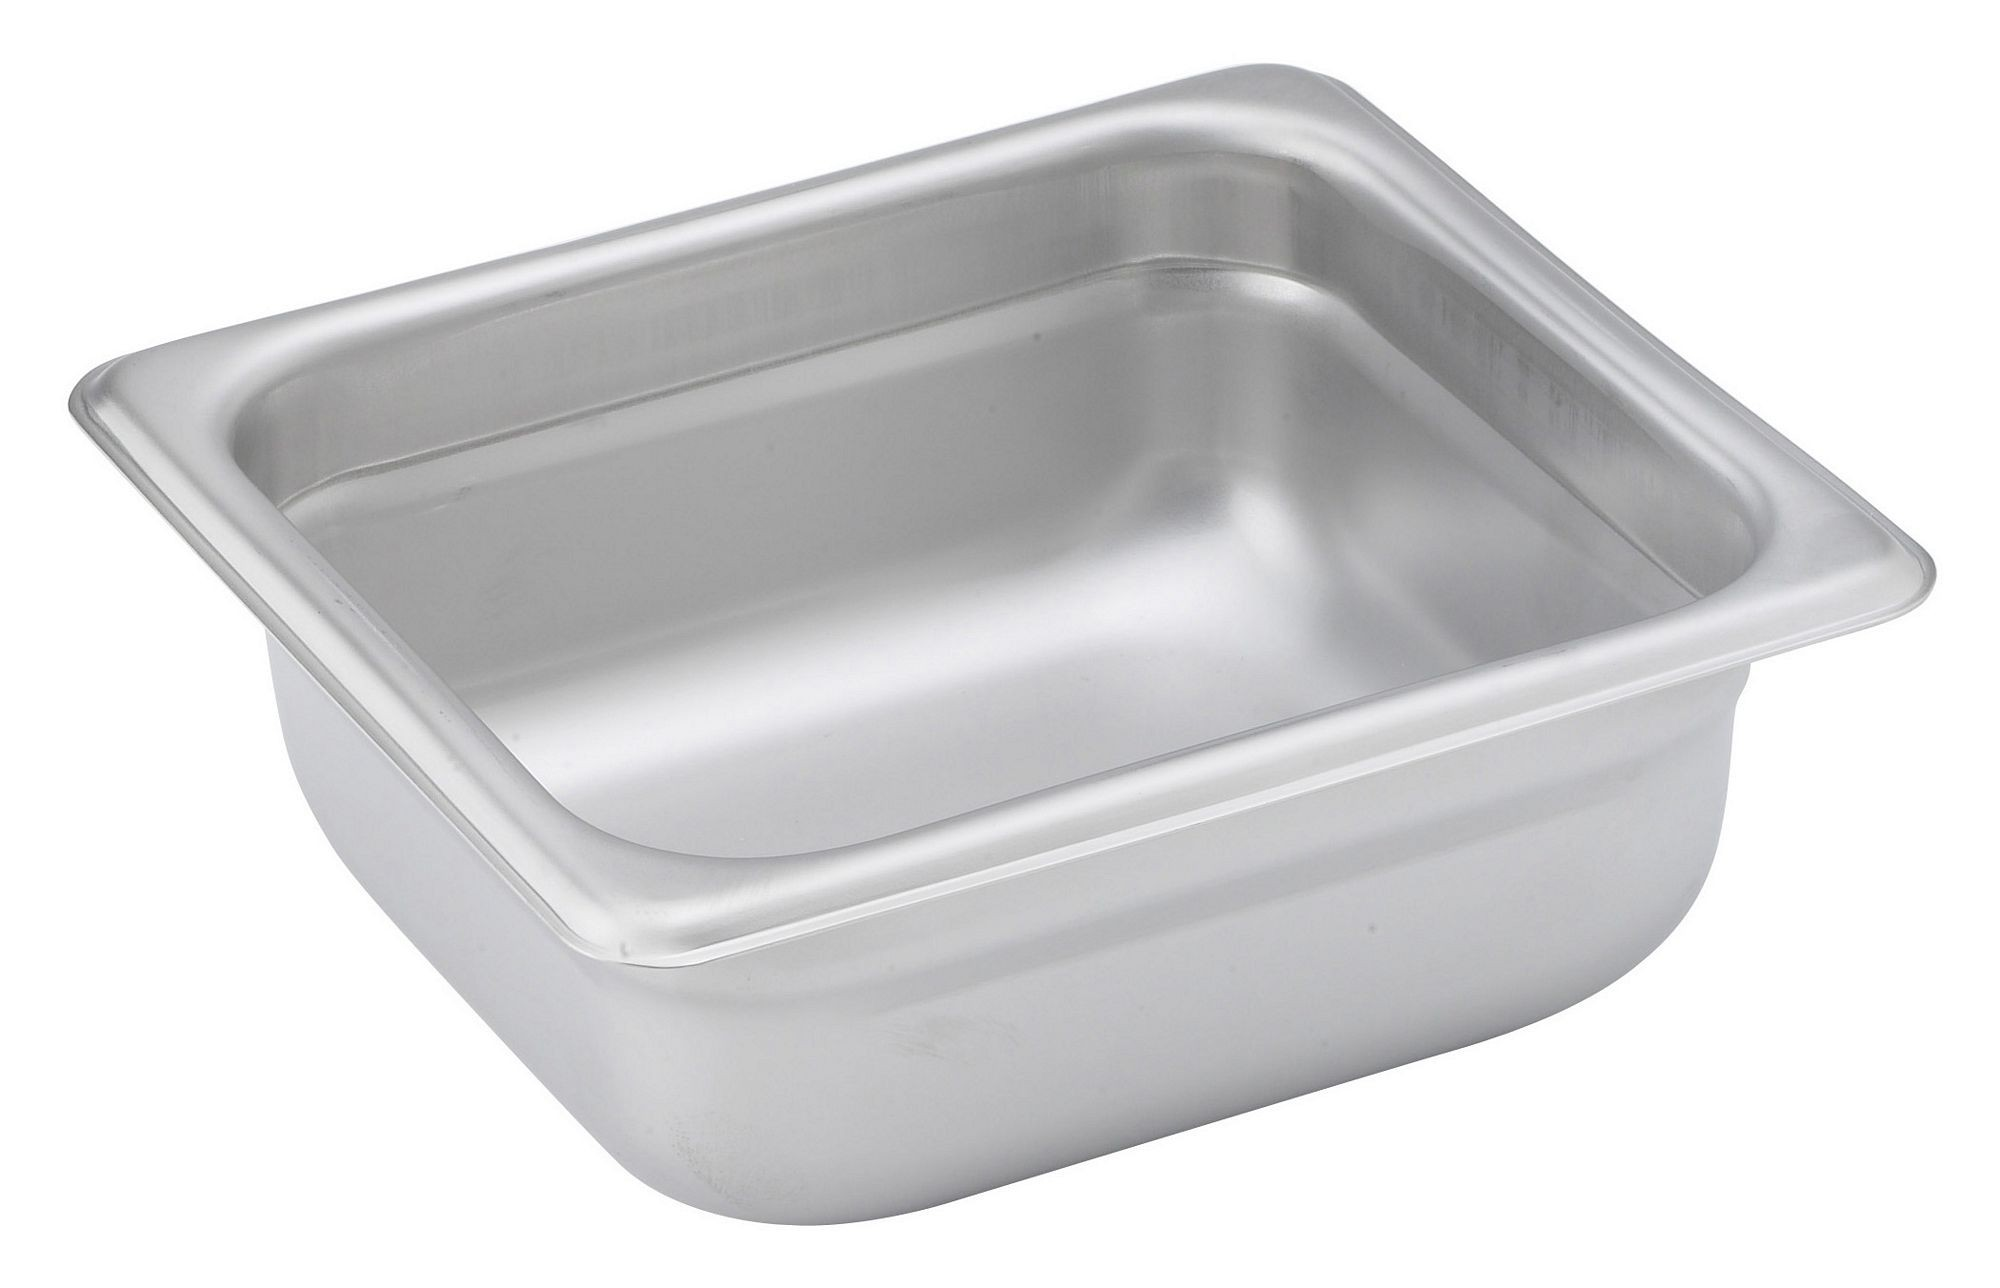 "Winco Spjh-602 1/6 Size Anti-Jam 22 Gauge Steam Table Pan 2-1/2"" Deep"